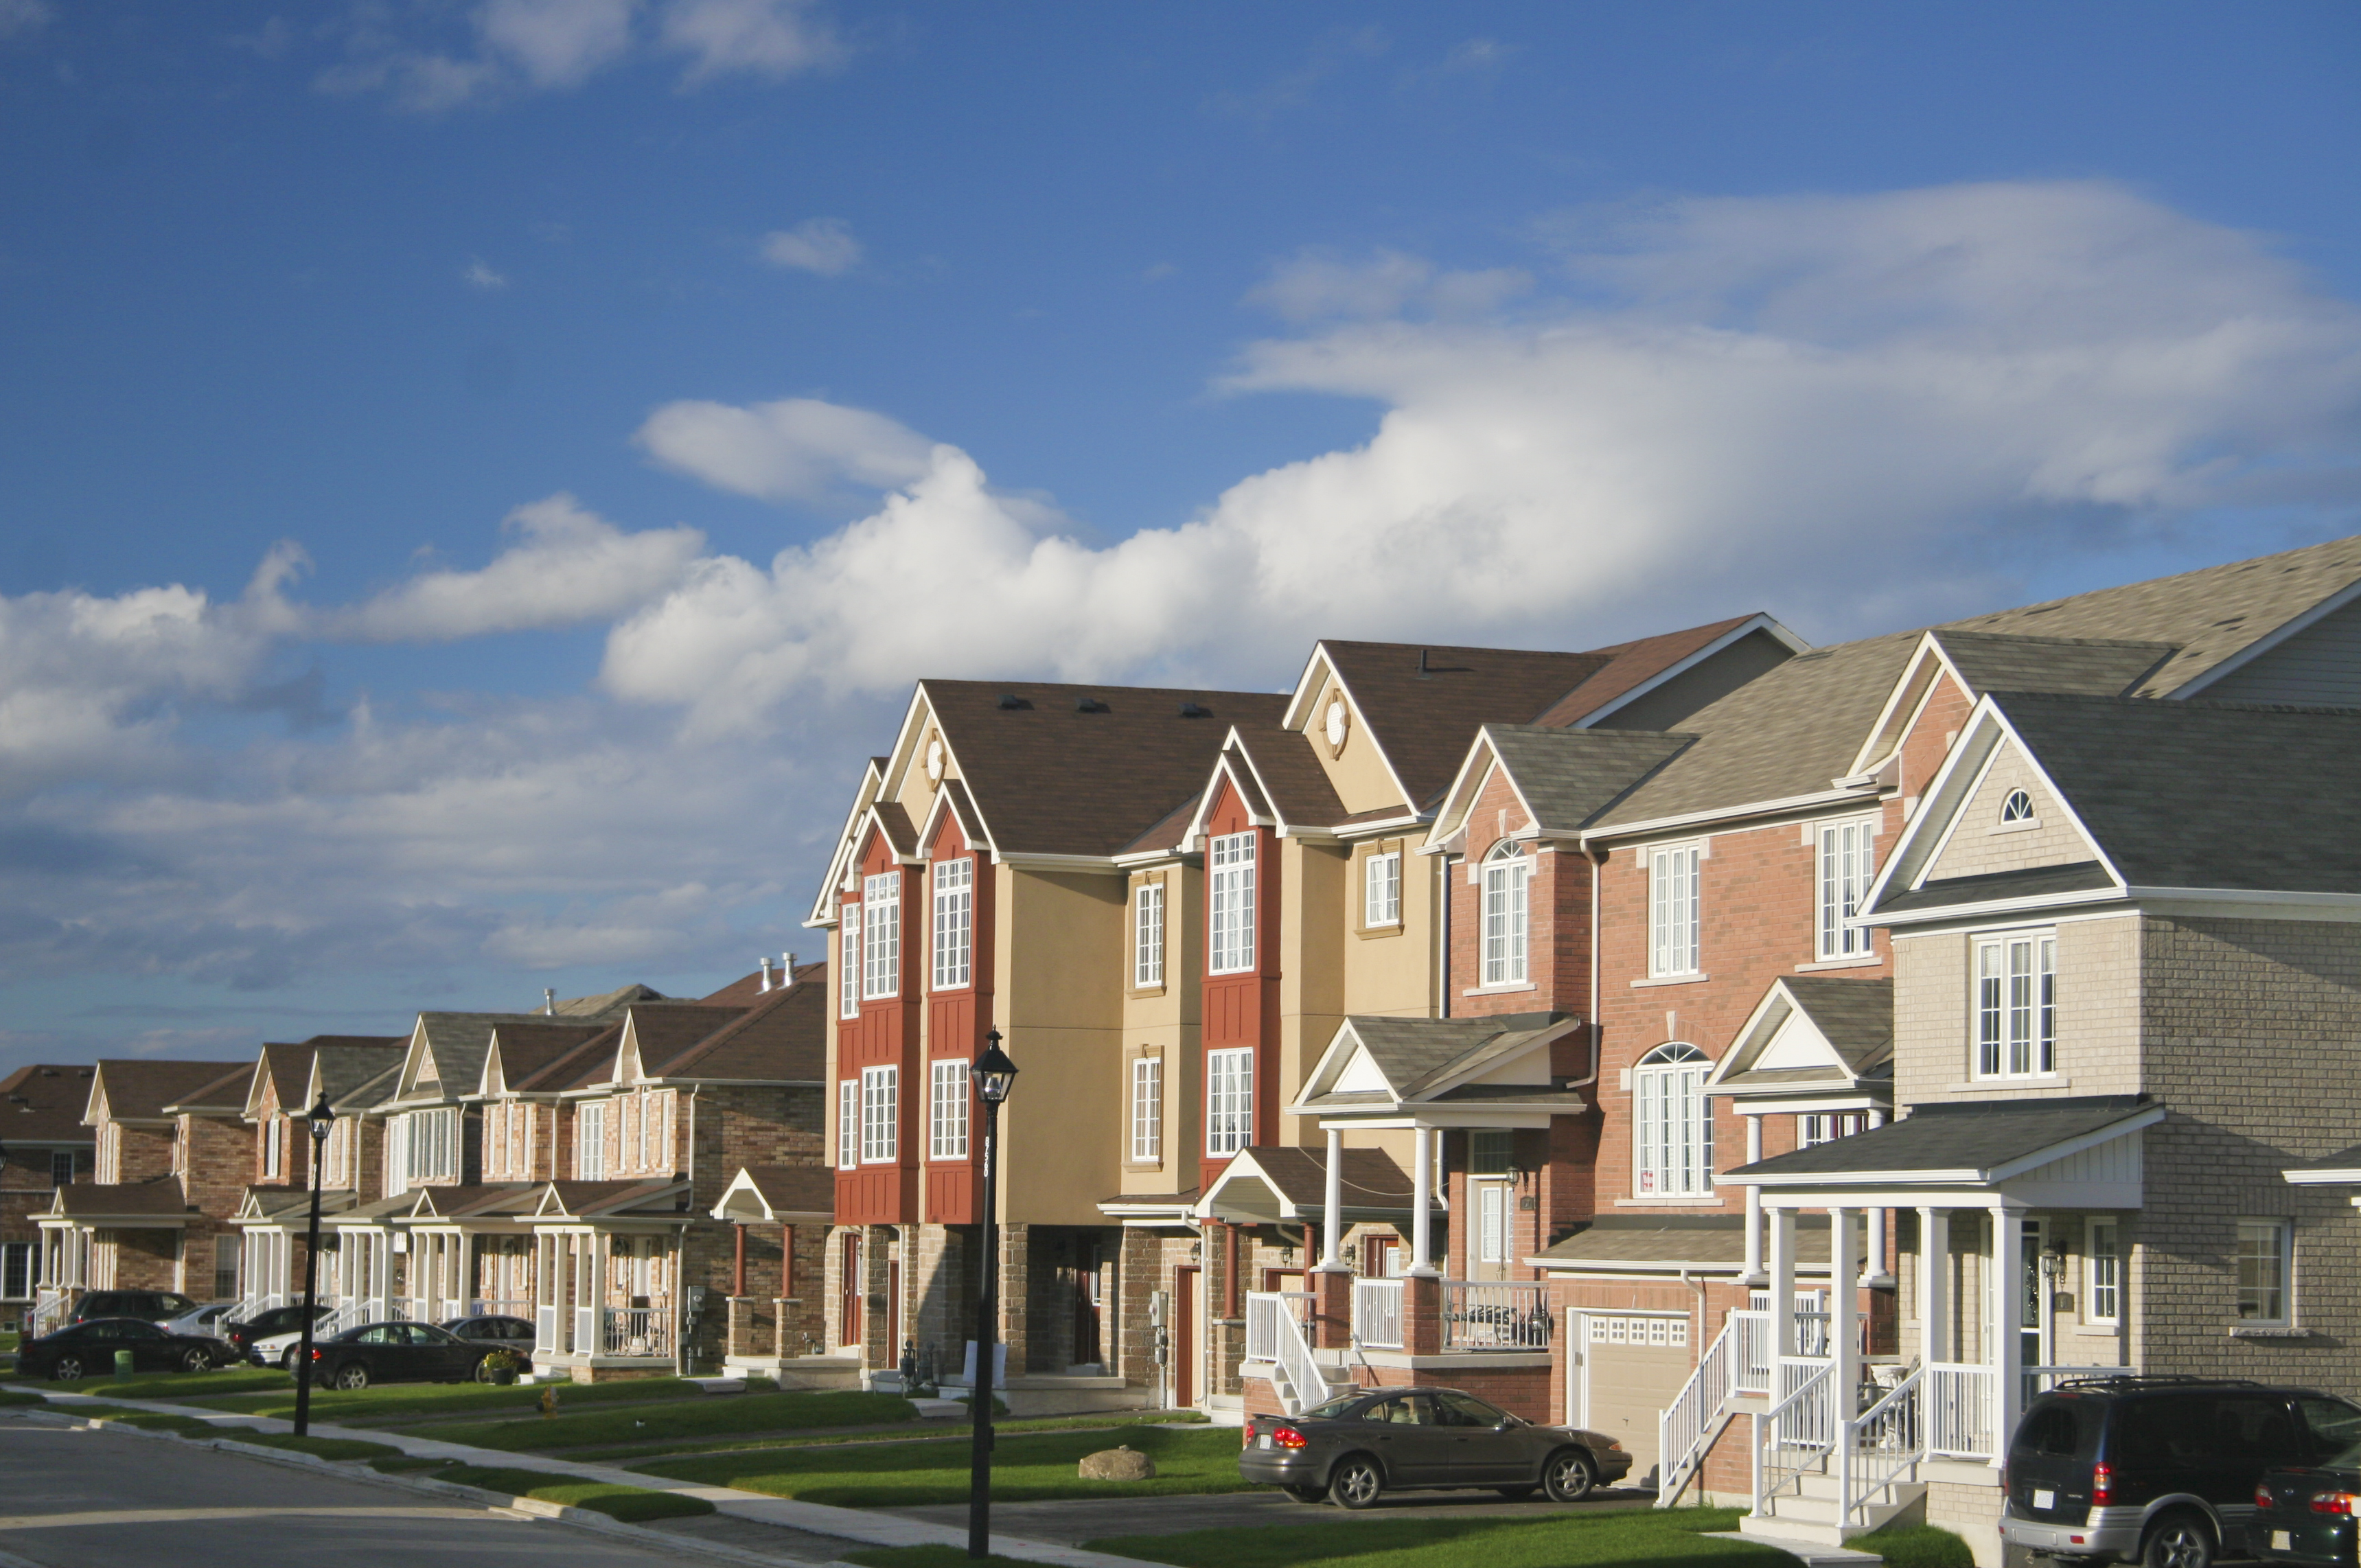 A row of homes in Schaumburg, IL